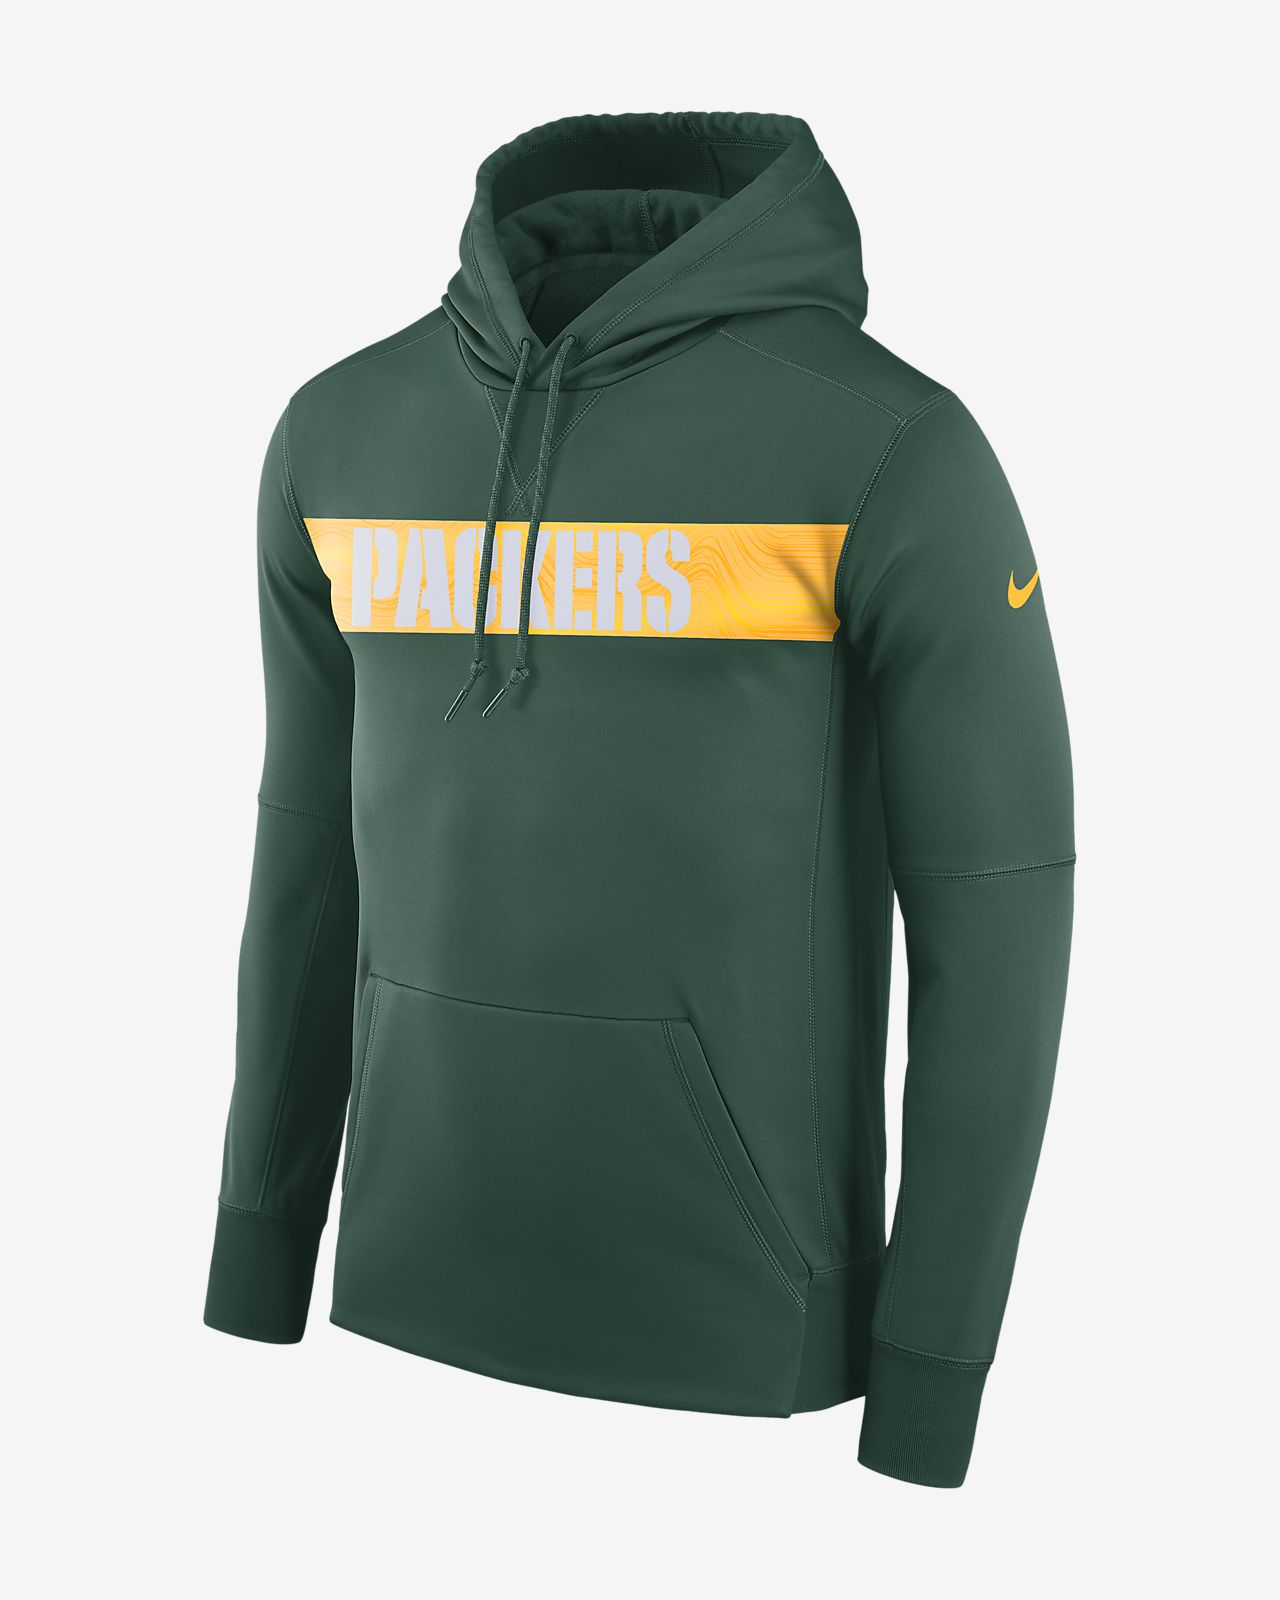 Nike Dri-FIT Therma (NFL Packers) Erkek Kapüşonlu Sweatshirt'ü